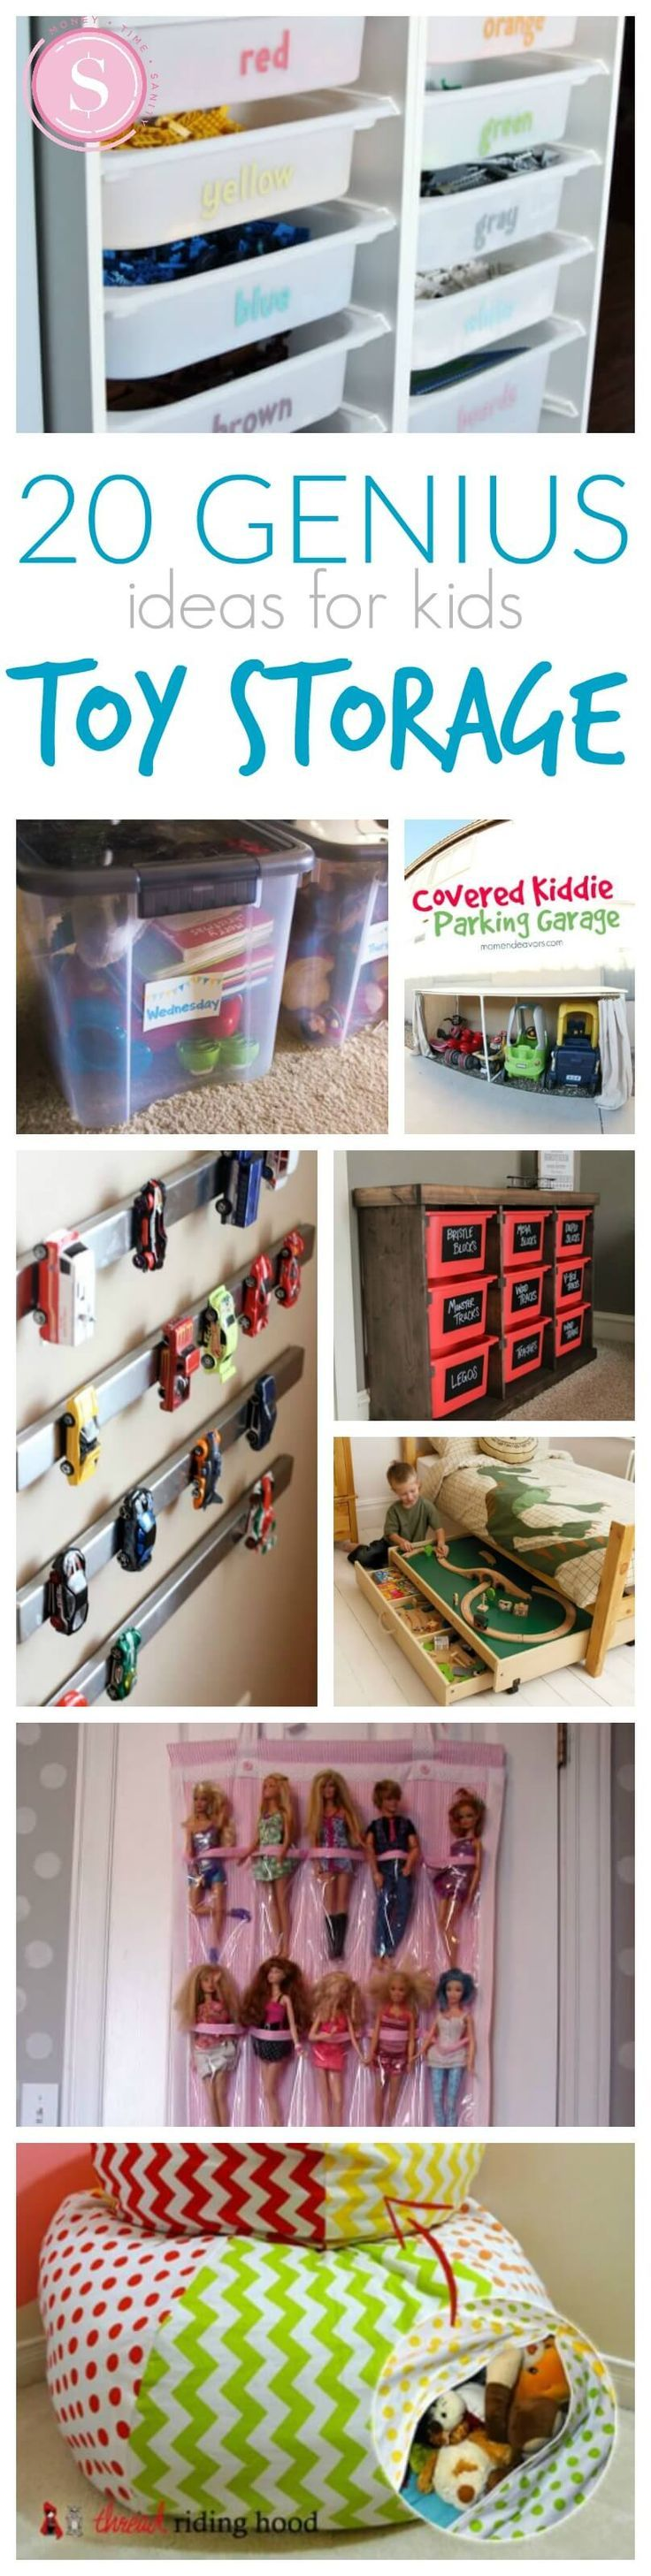 20 genius ideas for organizing your kidu0027s rooms great tips and tricks for spring cleaning diy toy storagebaby shoe